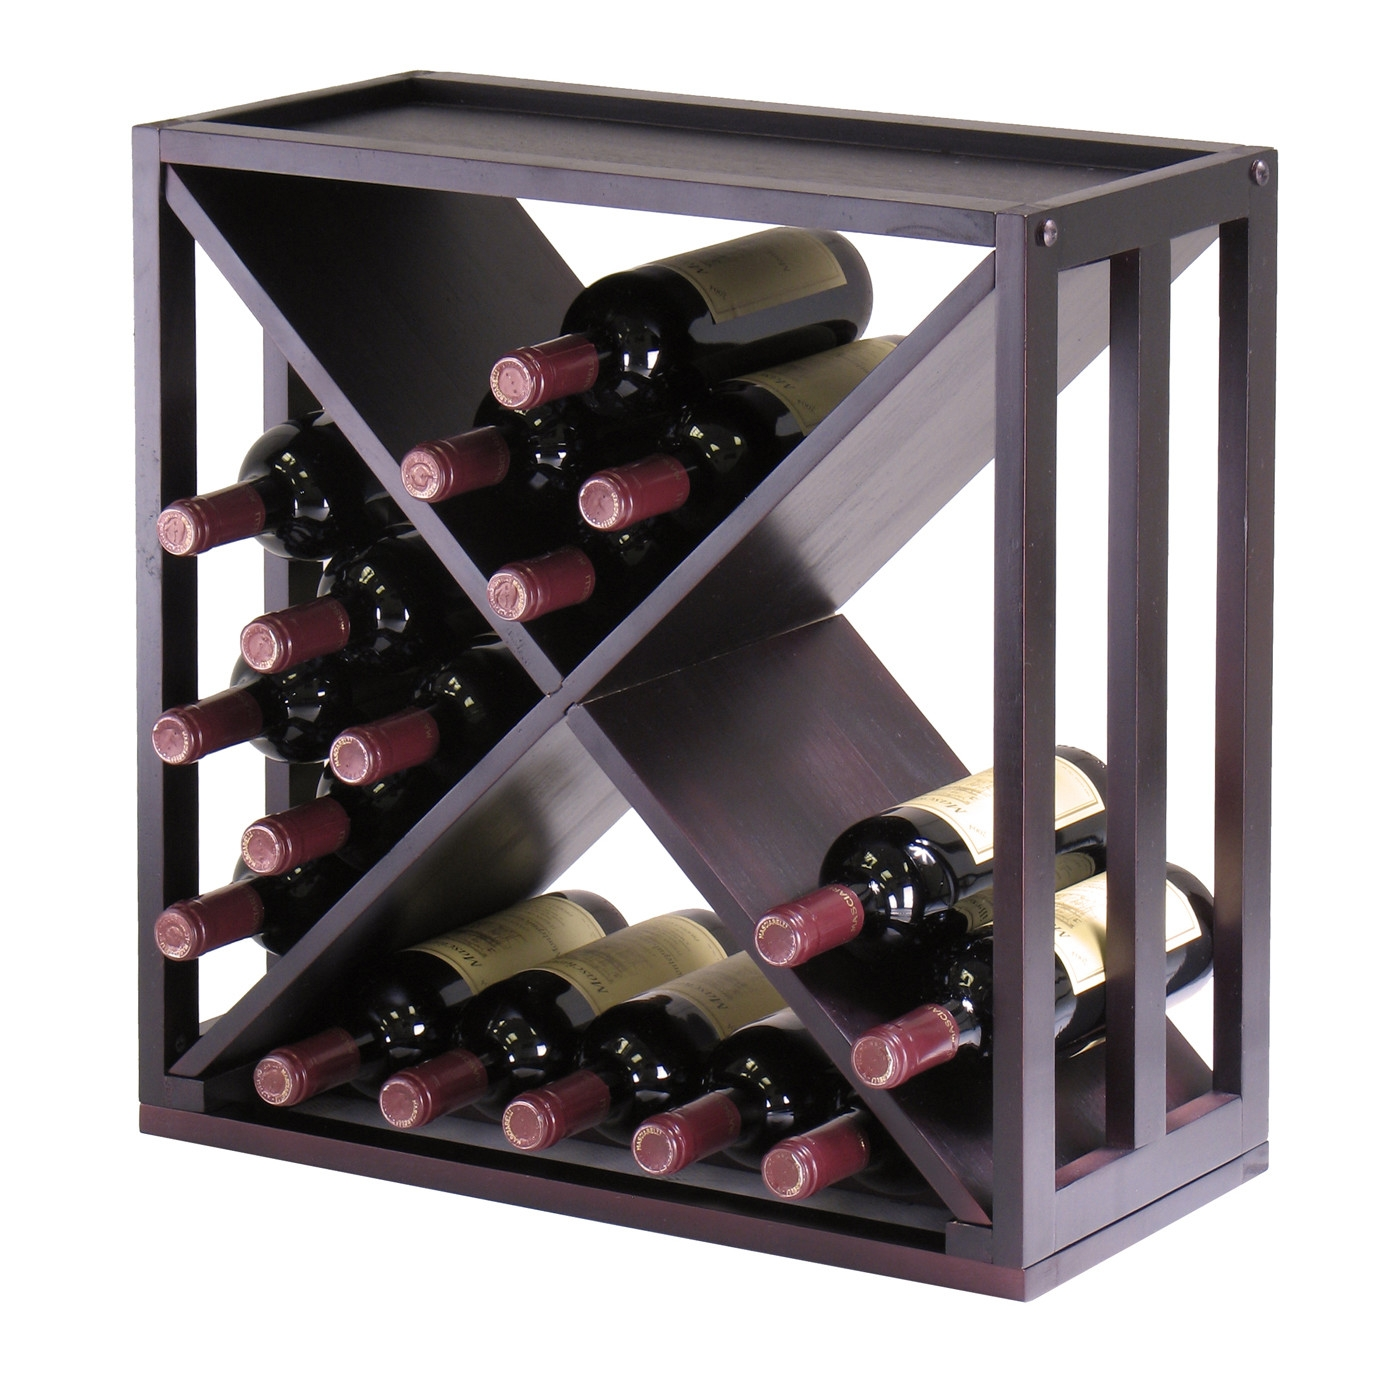 This 24-Bottle Modern Wine Rack Modular and Stackable in Espresso would be a great addition to your home. It has an espresso finish and a wood construction. Espresso finish; Style: Traditional; Design: Cube; Stackable; Bottle Size Compatibility (mL): 750; Commercial Use: No; Country of Manufacture: China. Product Warranty: Replacement parts within 60 days from date of purchase.